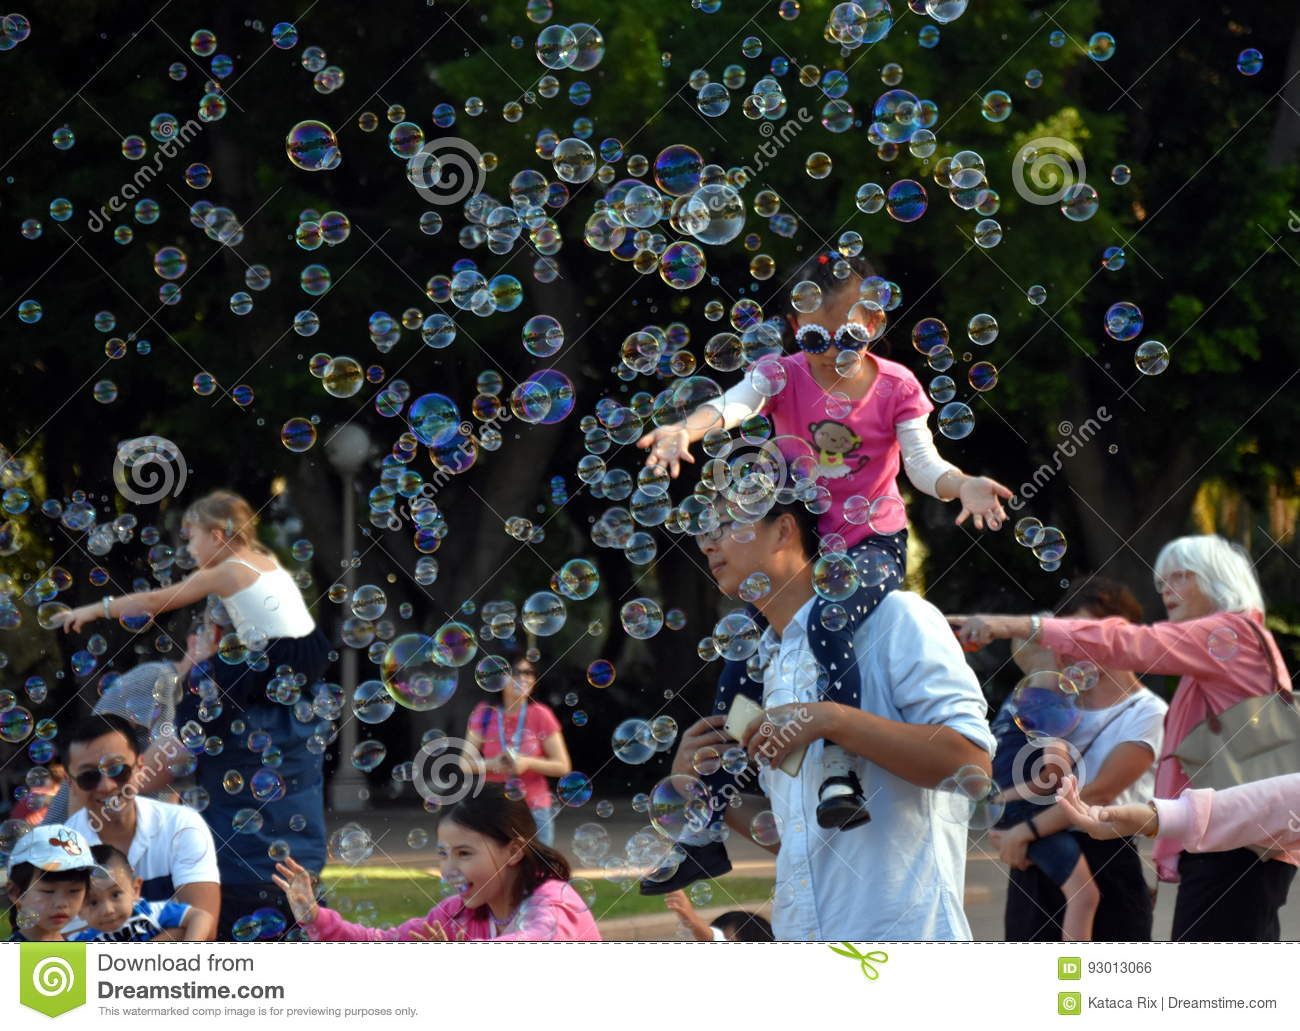 Kids catching and having fun and with soap bubbles